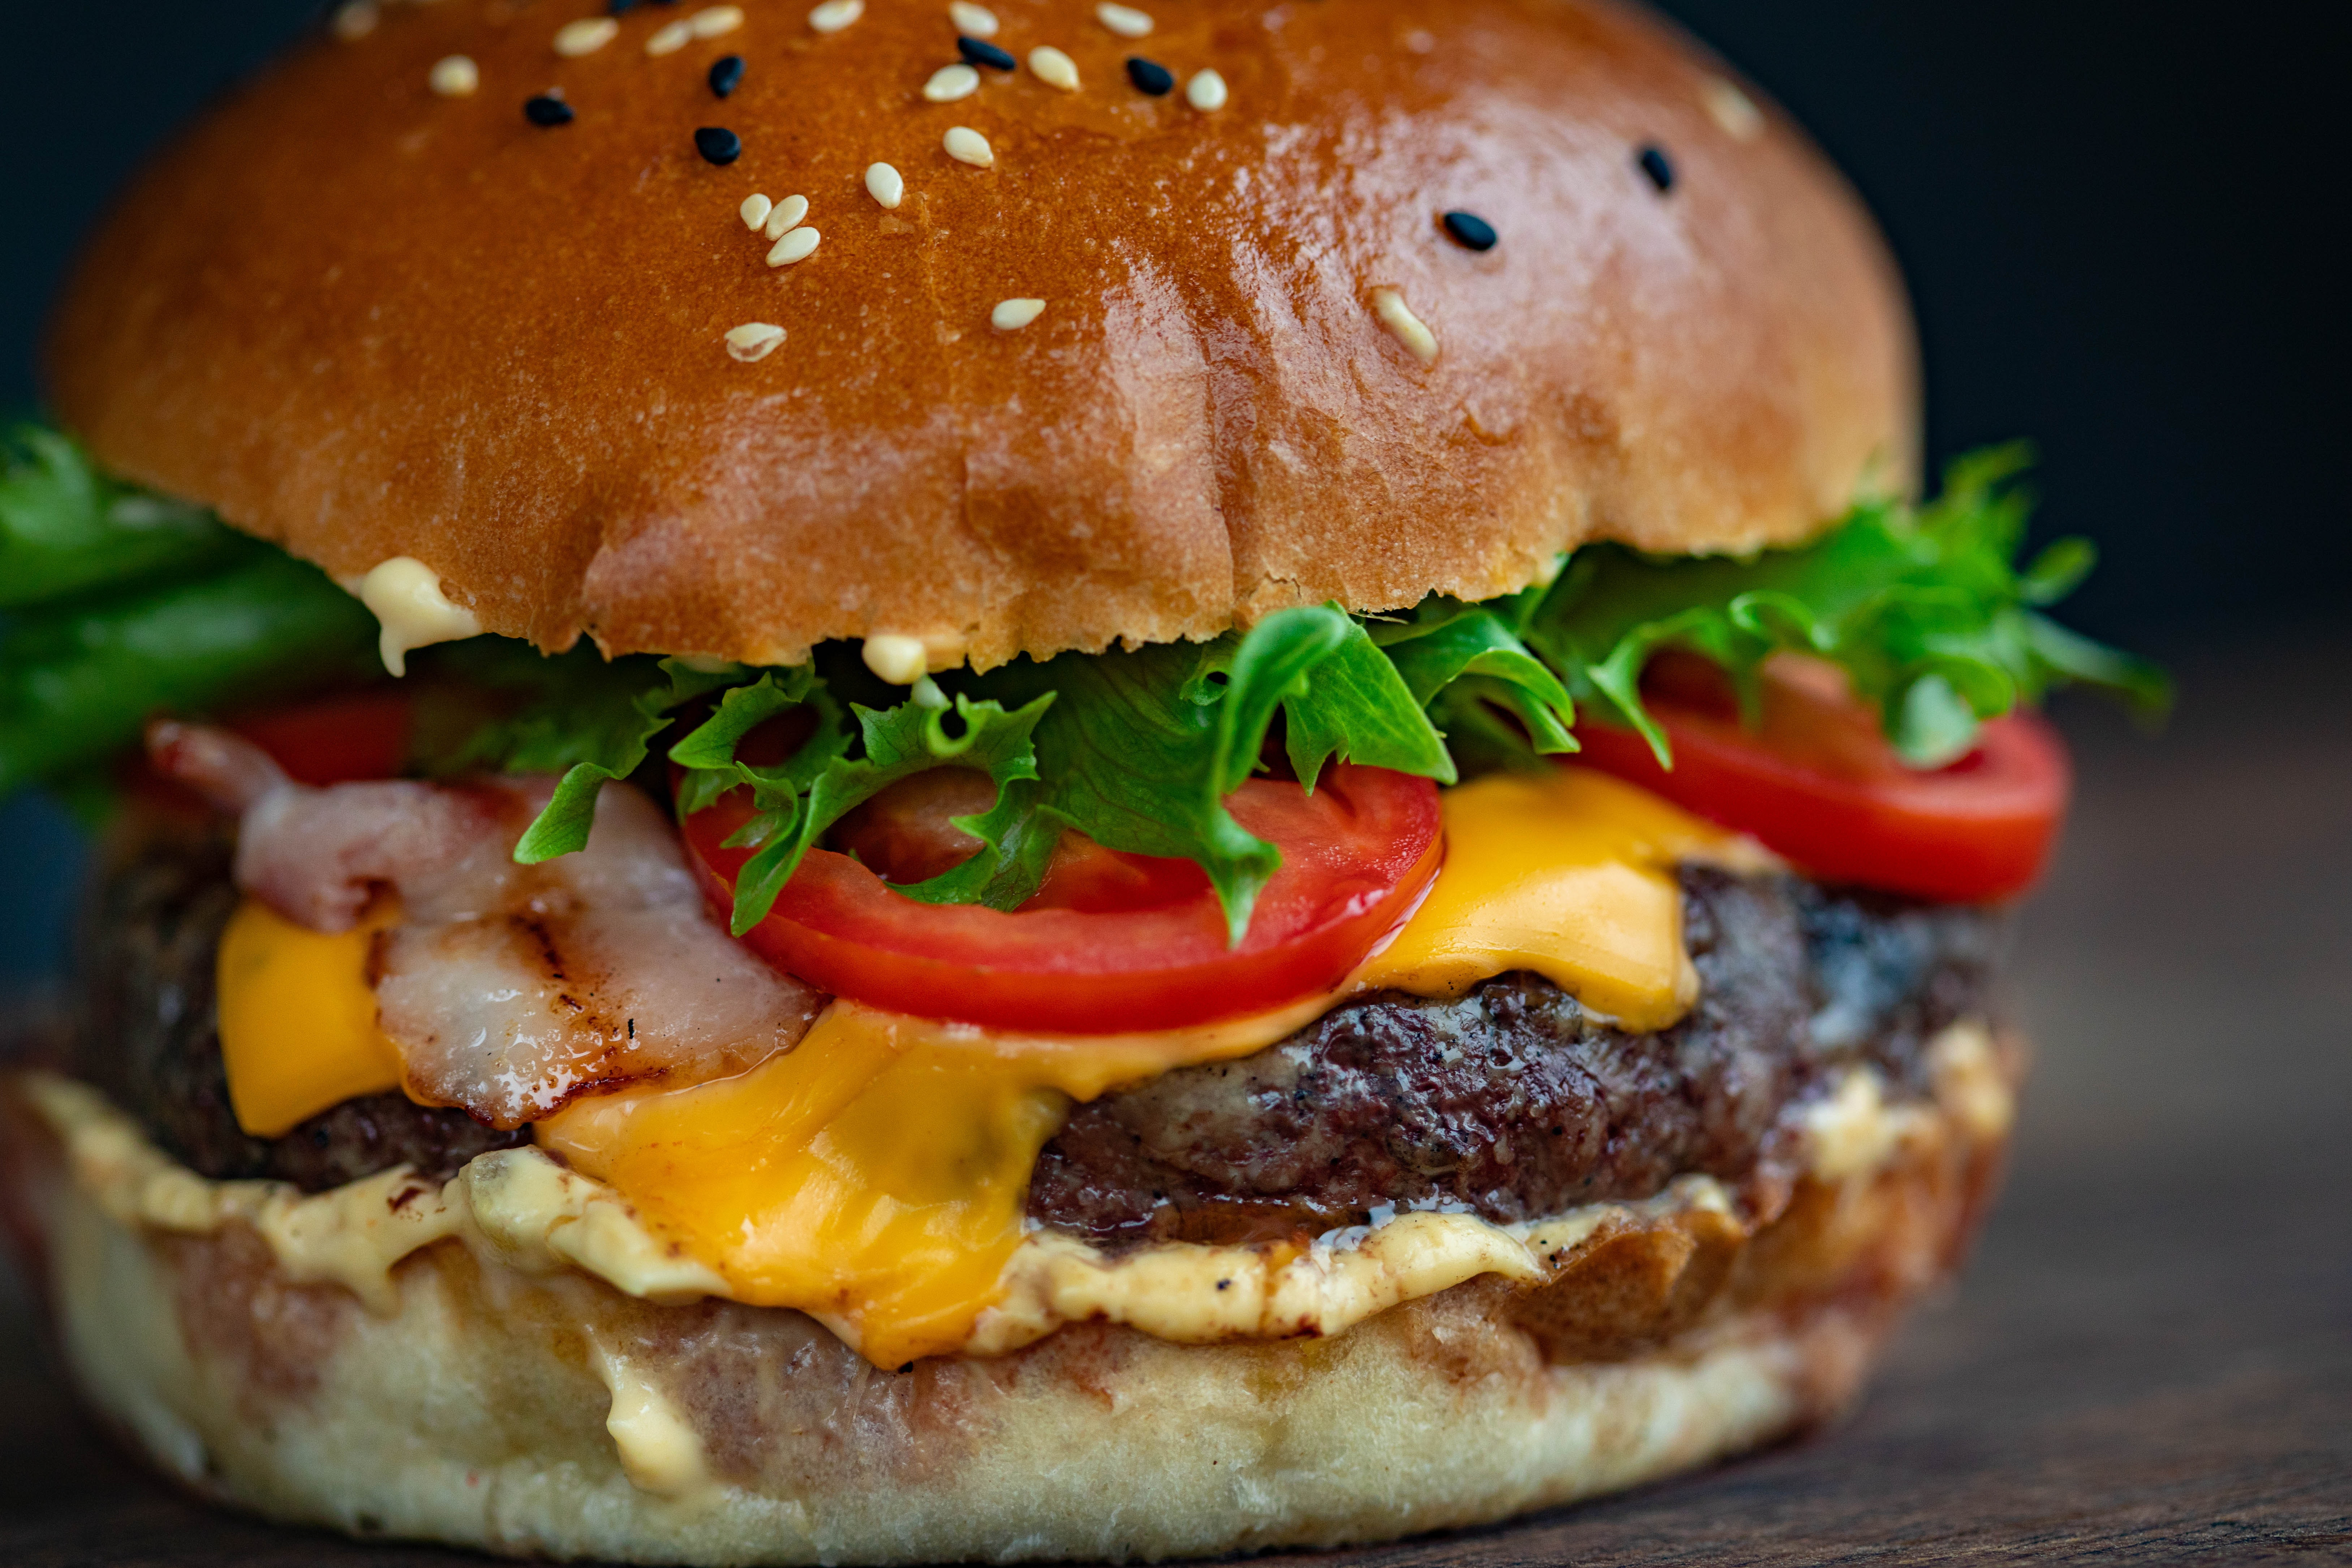 America's best lunch catering: Burgers